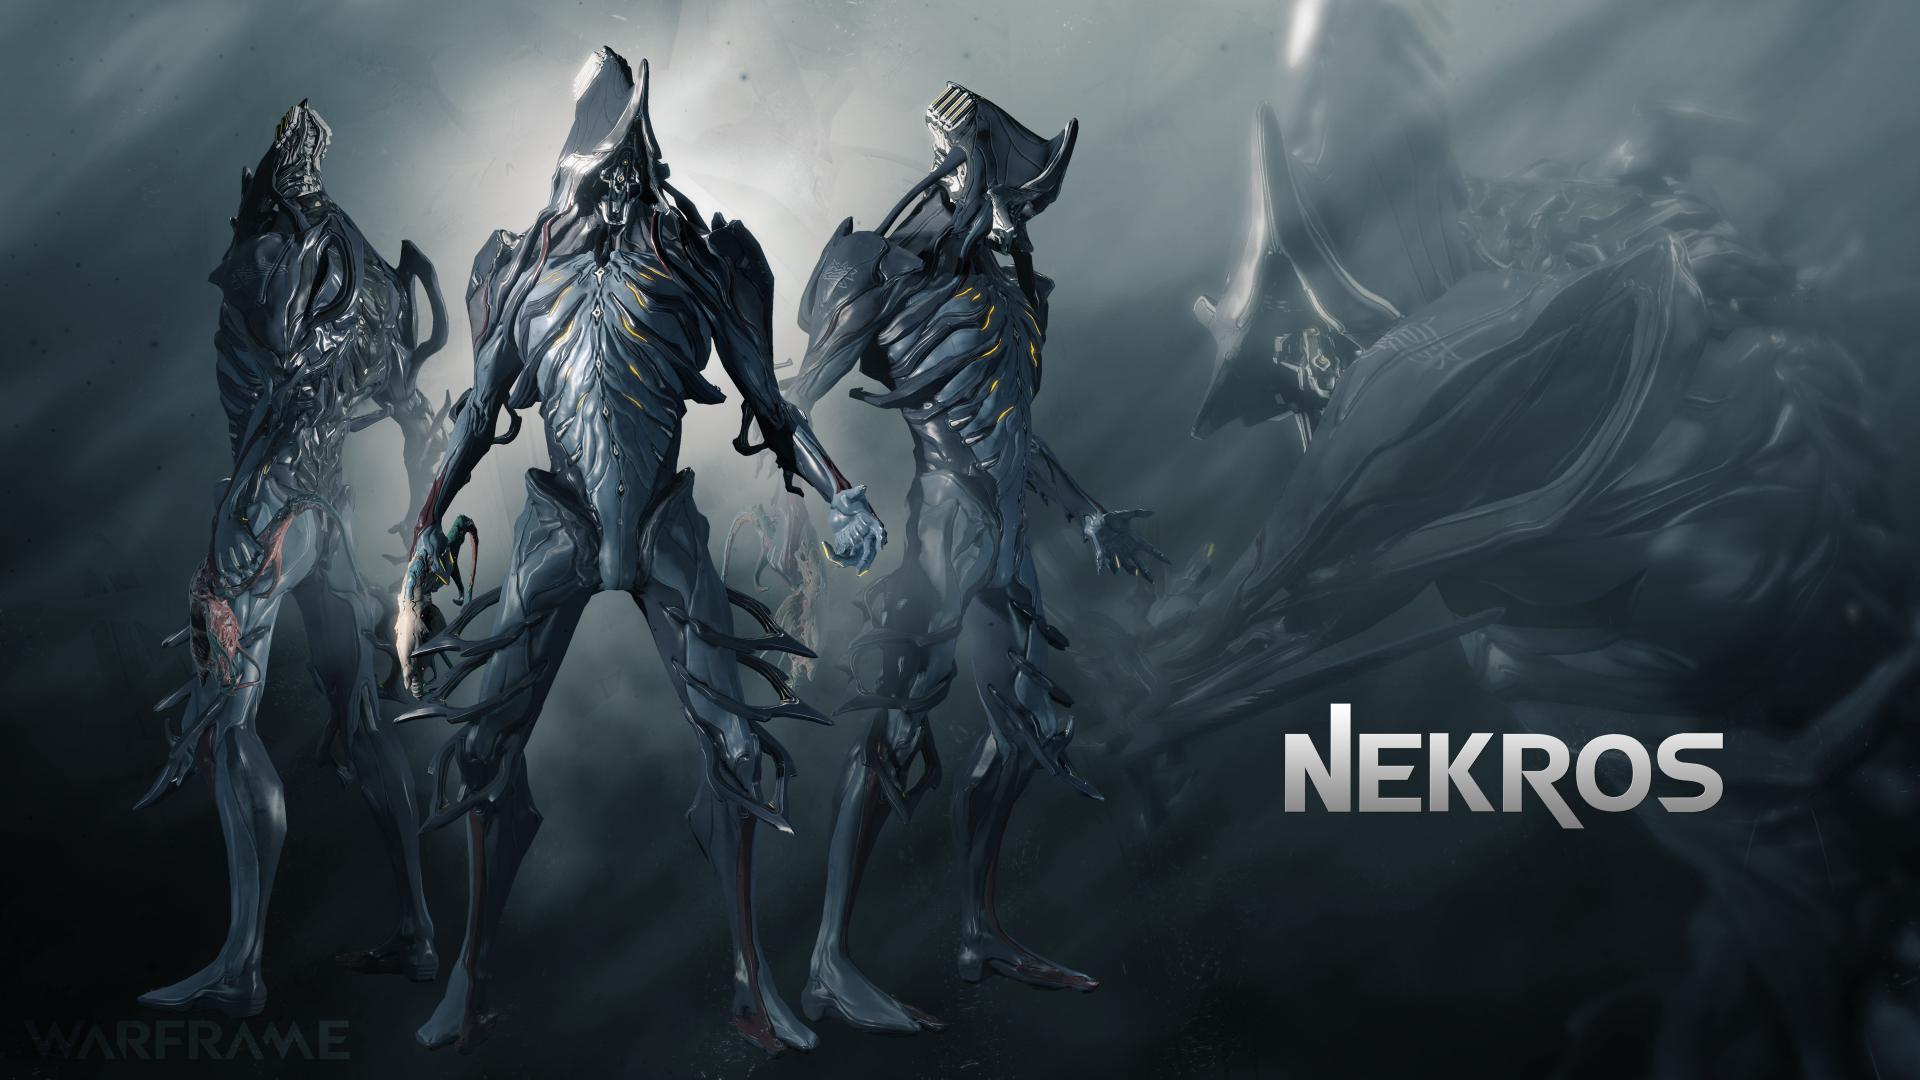 warframe update 10 shadows of the dead gets trailer